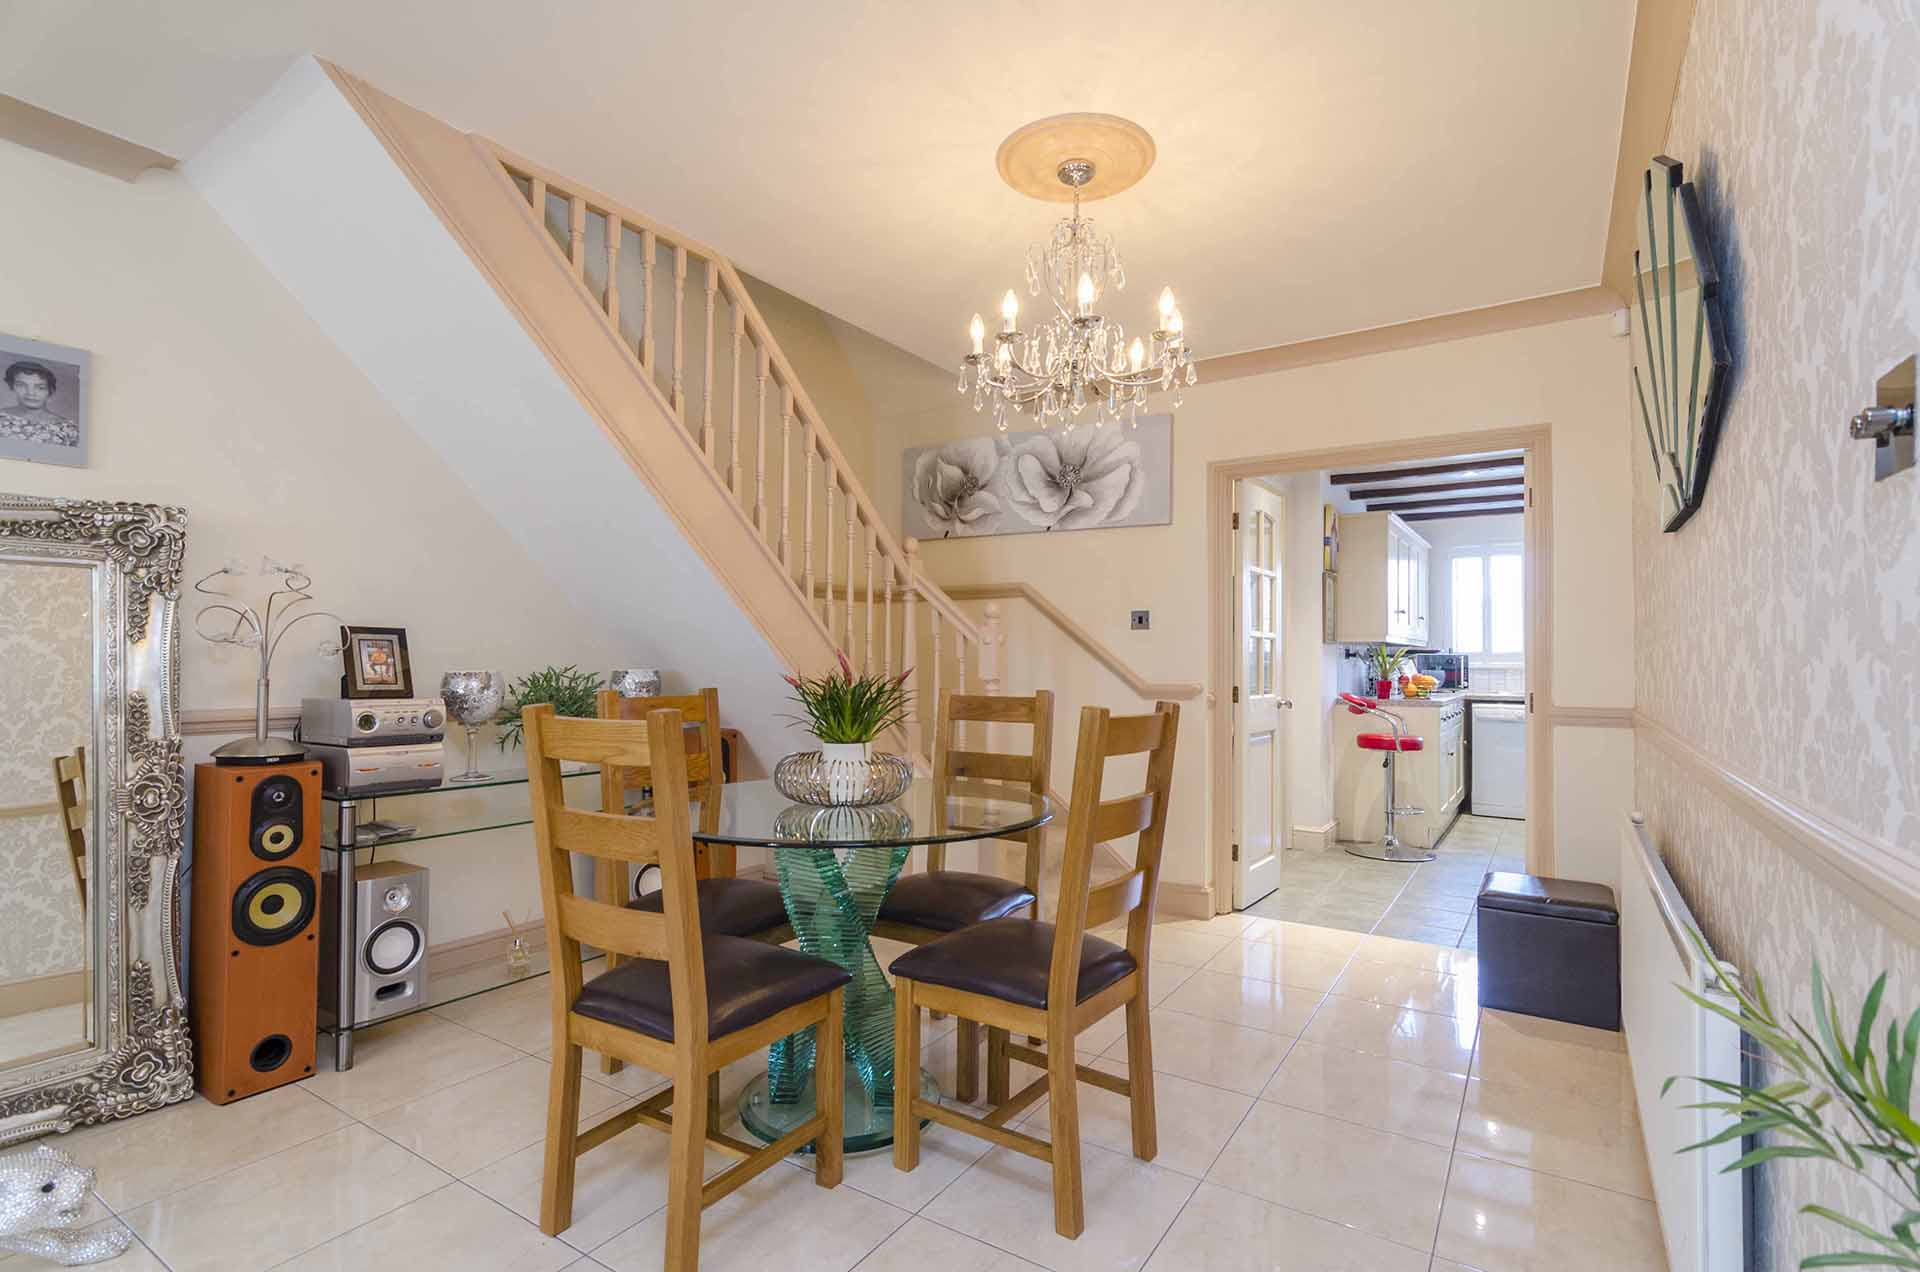 The House Photographer - Property Photography - E4 1